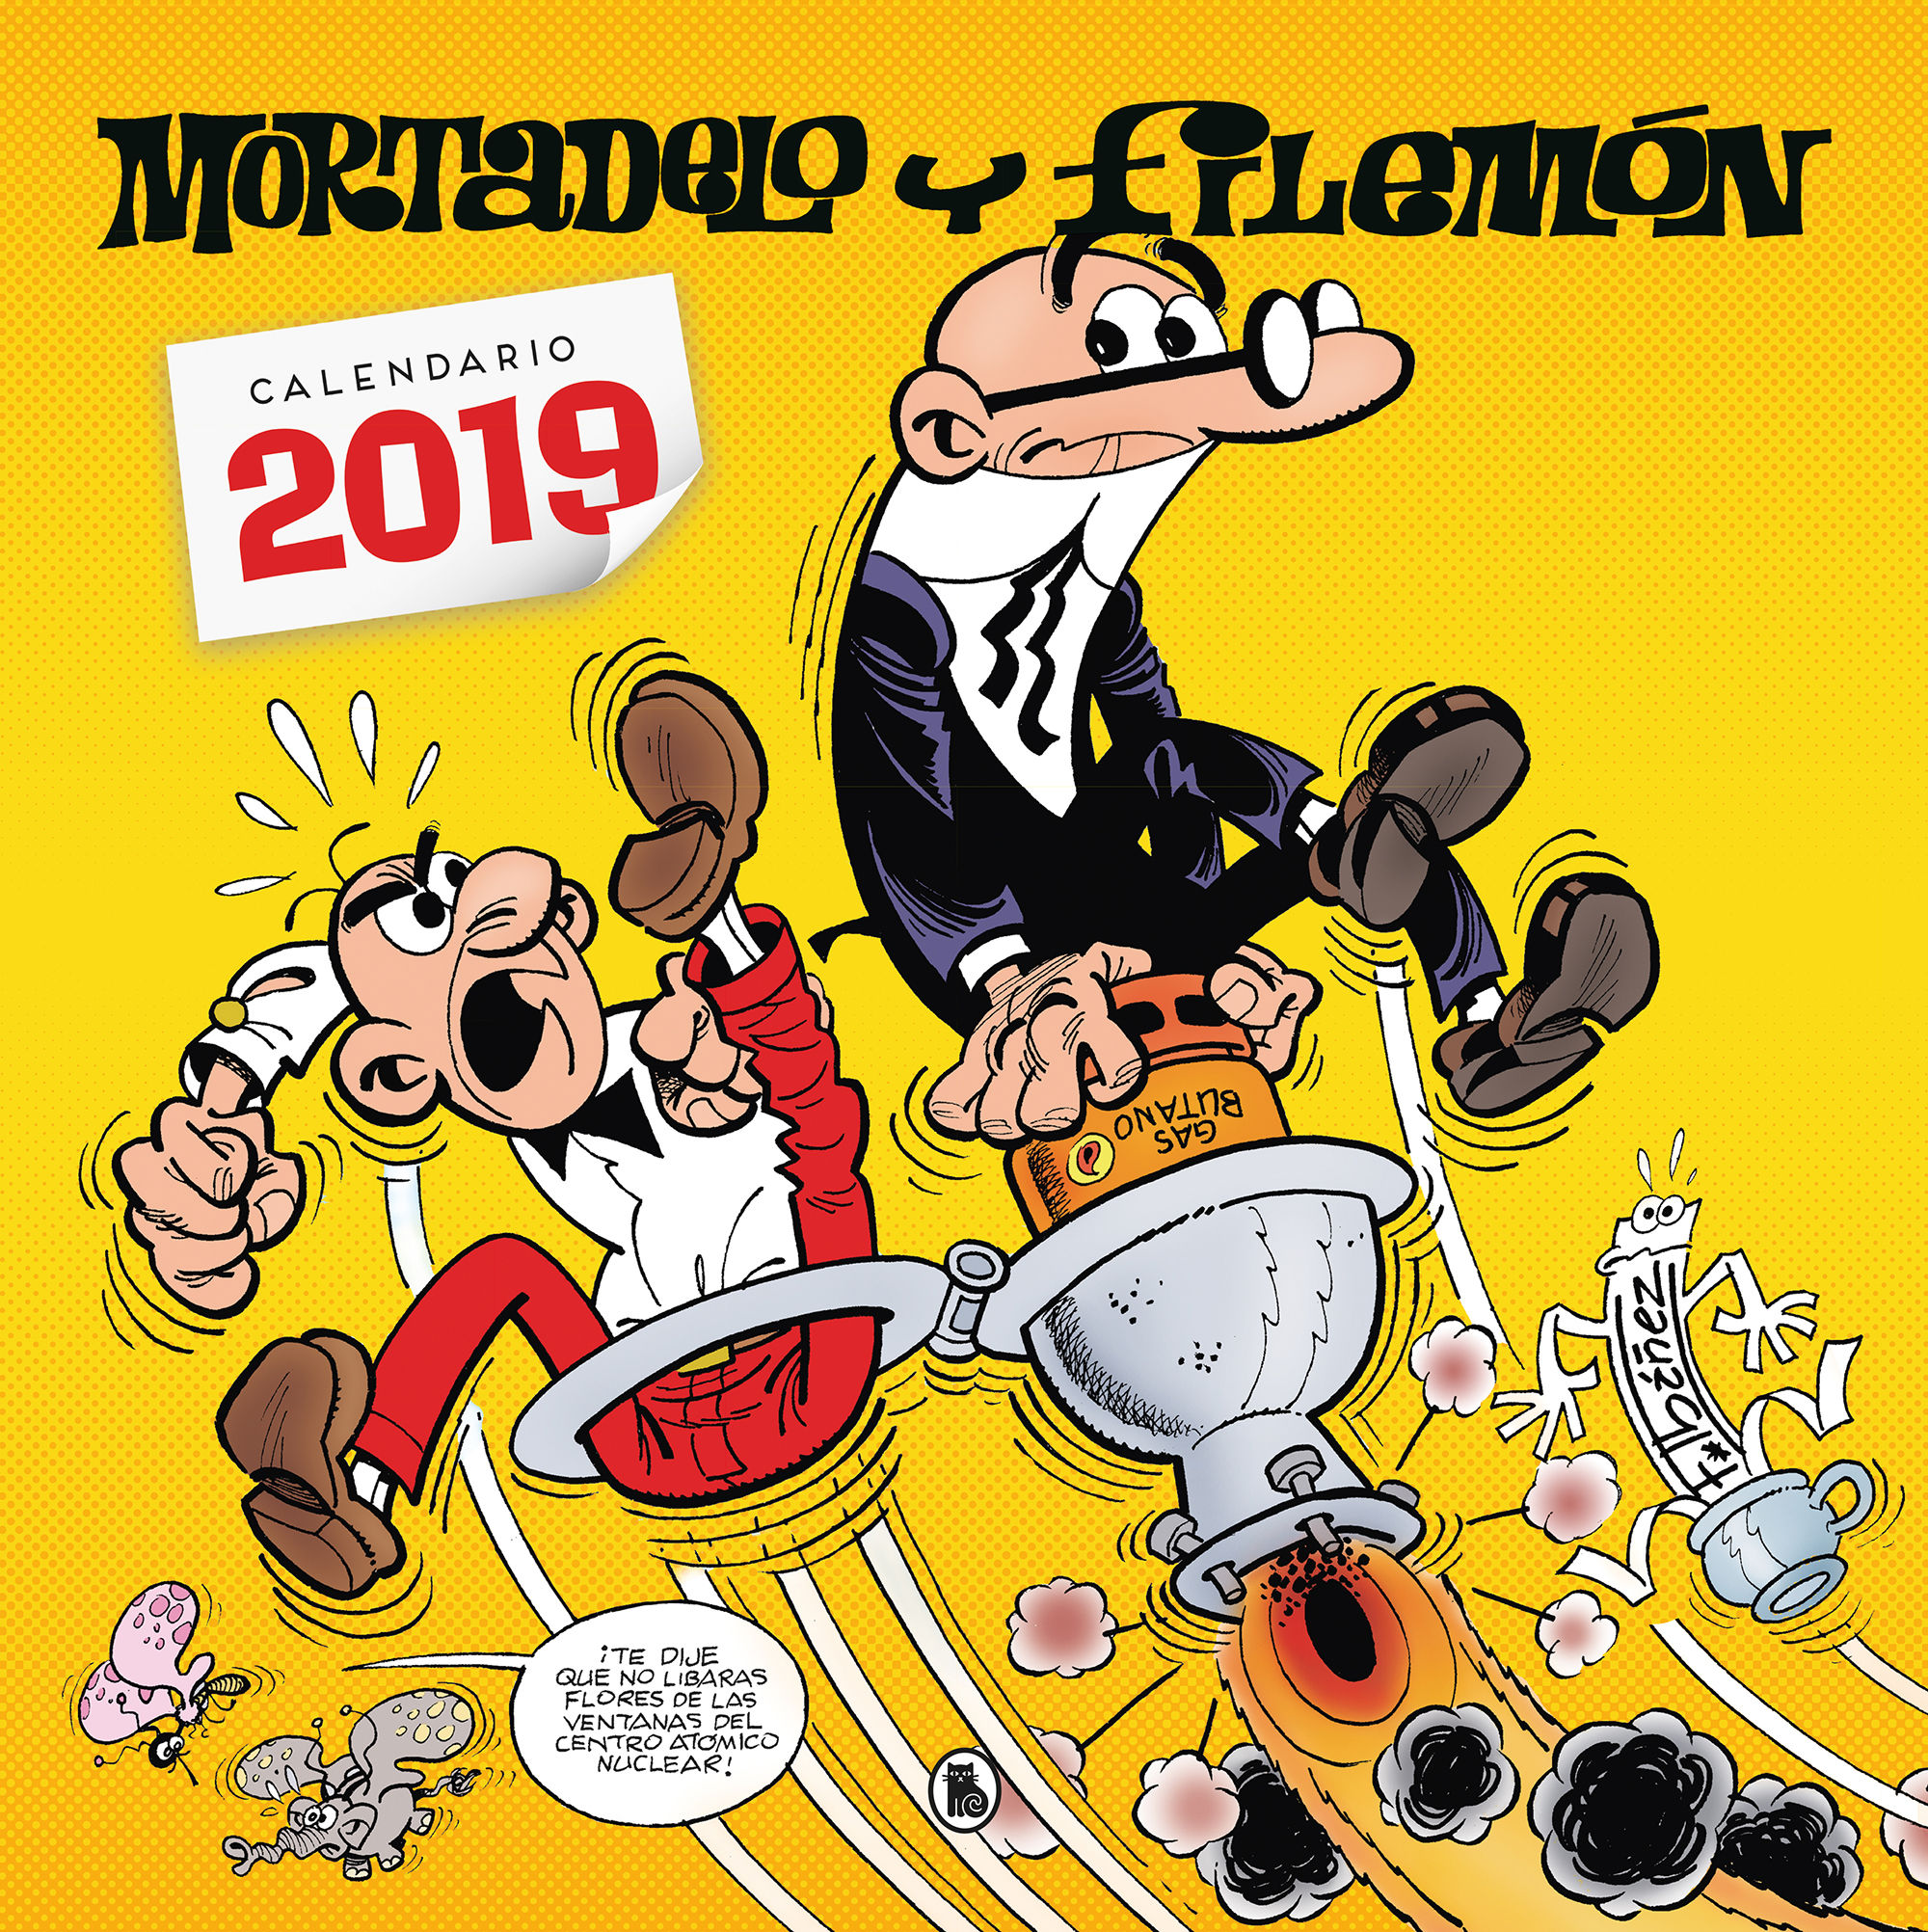 CALENDARIO MORTADELO Y FILEMON 2019